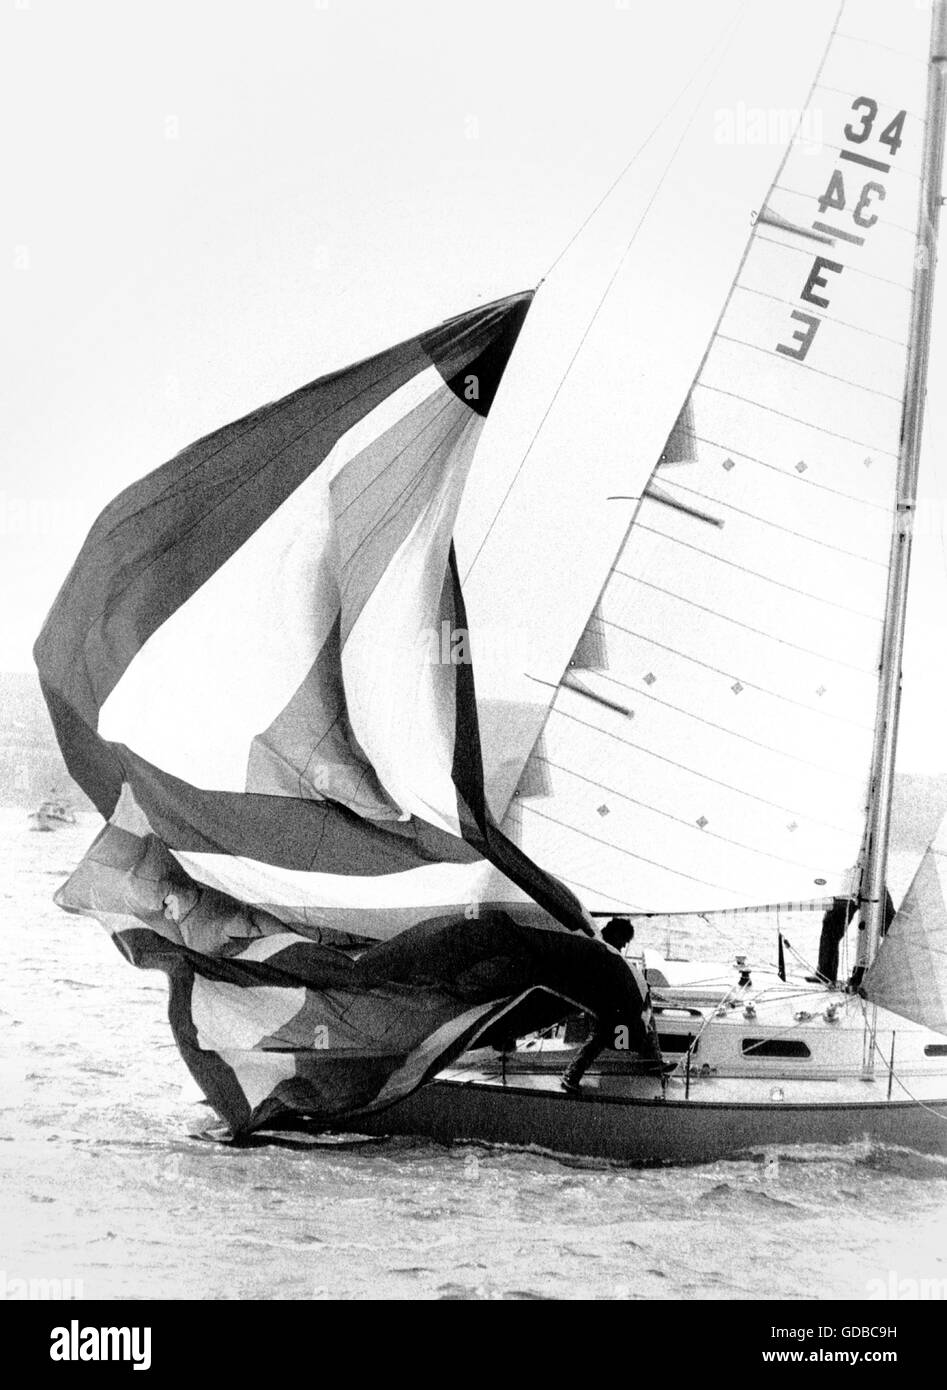 AJAX NEWS PHOTOS. 1979. LYMINGTON,ENGLAND. - ROYAL LYMINGTON CUP MATCH RACE - THE BOAT (GB), SKIPPERED BY PHIL CREBBIN, - Stock Image